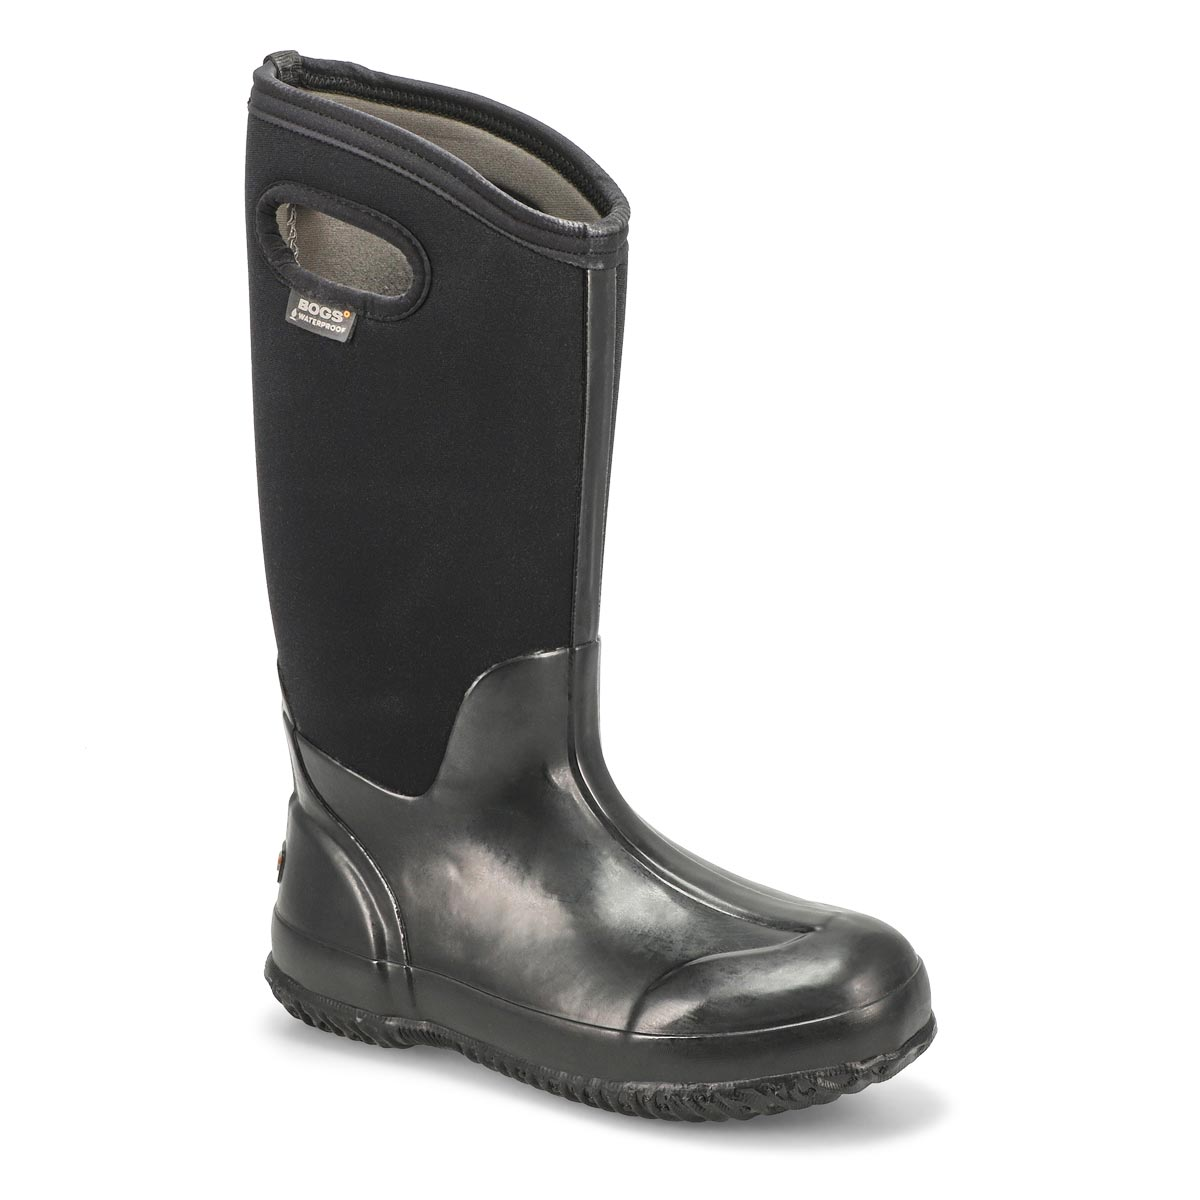 Lds Classic High black shiny wtrpf boot